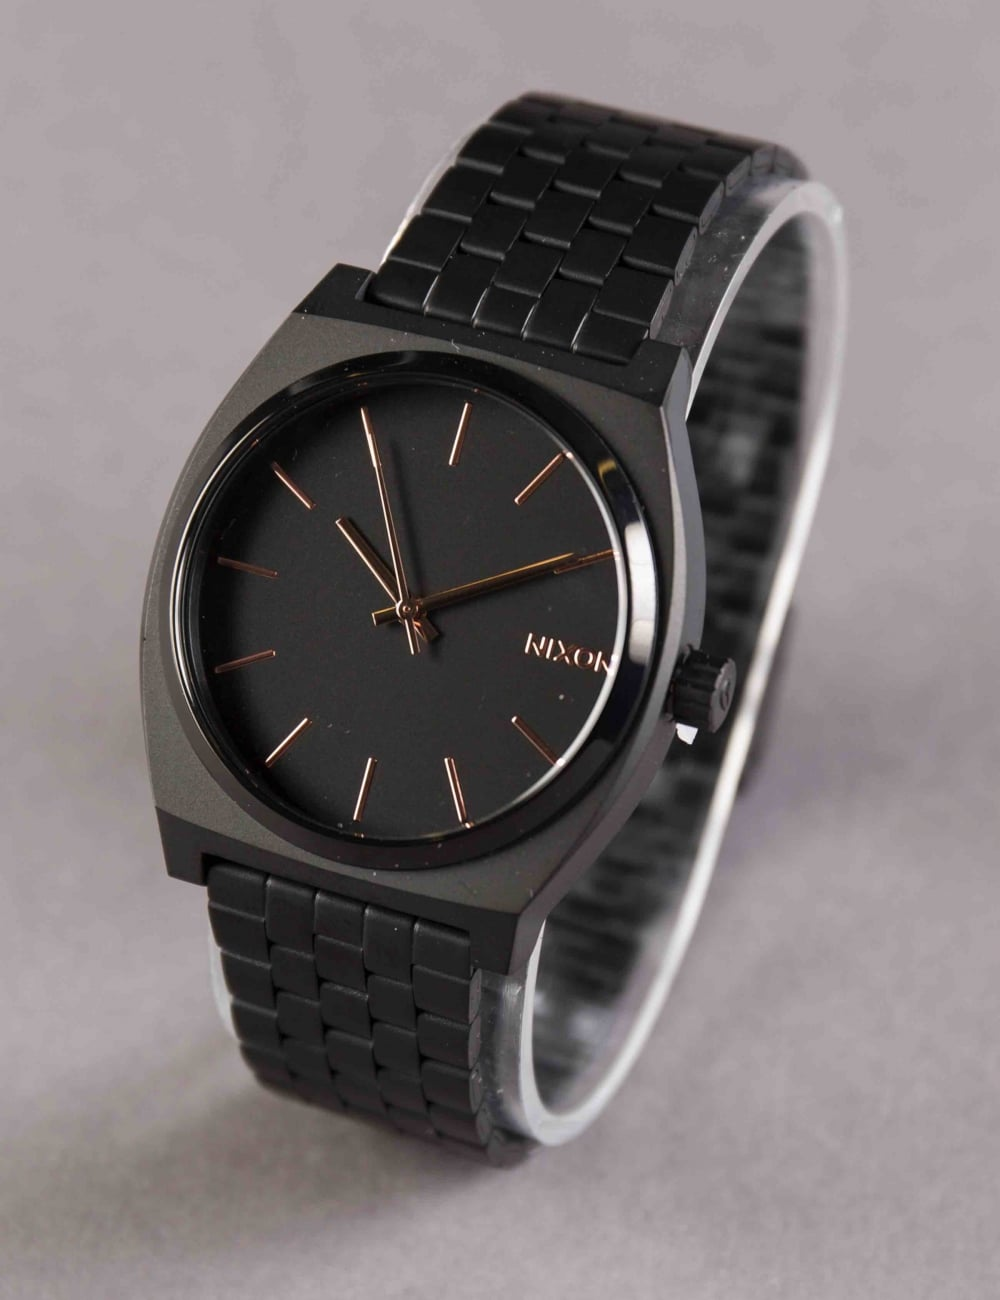 63005b7e2 Nixon Time Teller Watch - All Black/Rose Gold - Accessories from Fat ...